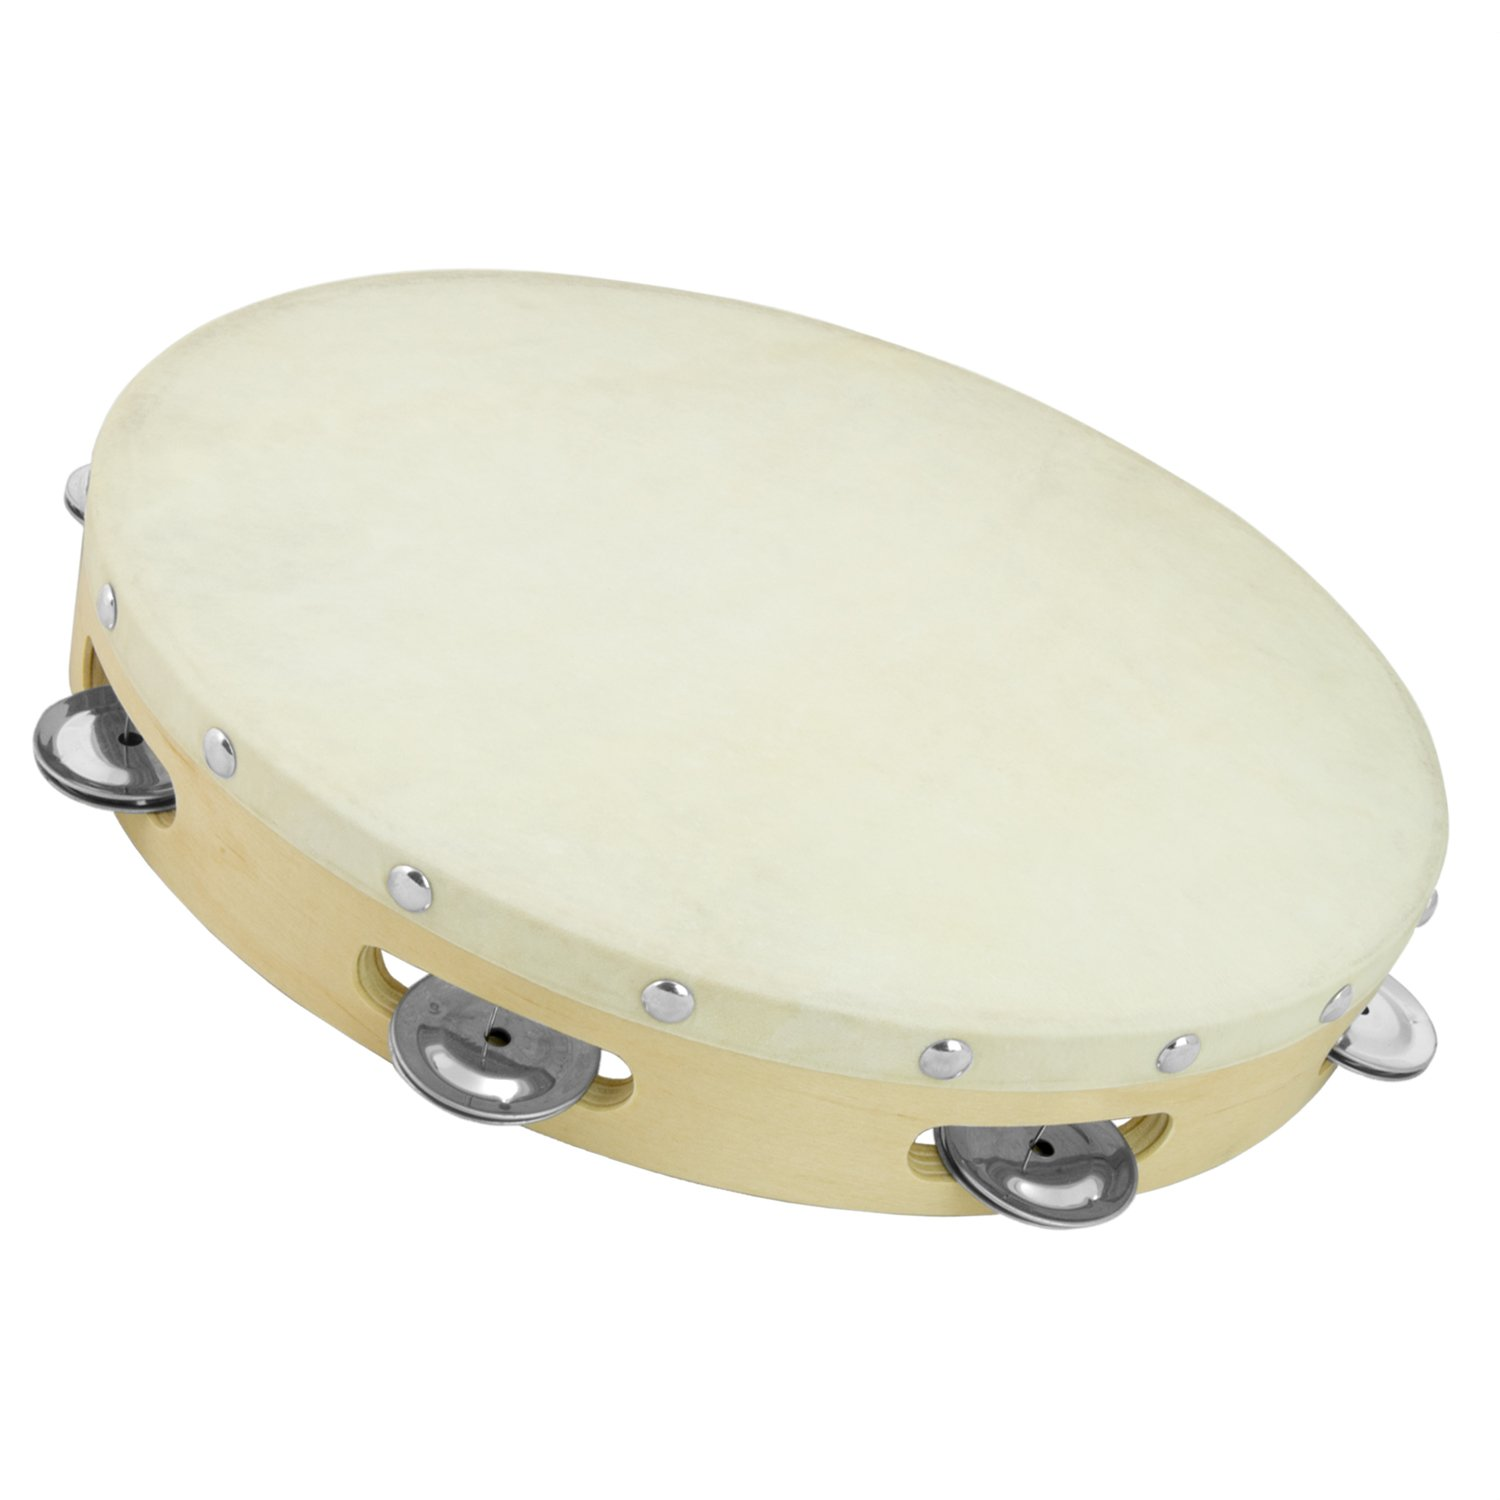 Tiger 12 inch Single Row Wood Tambourine by Tiger Music